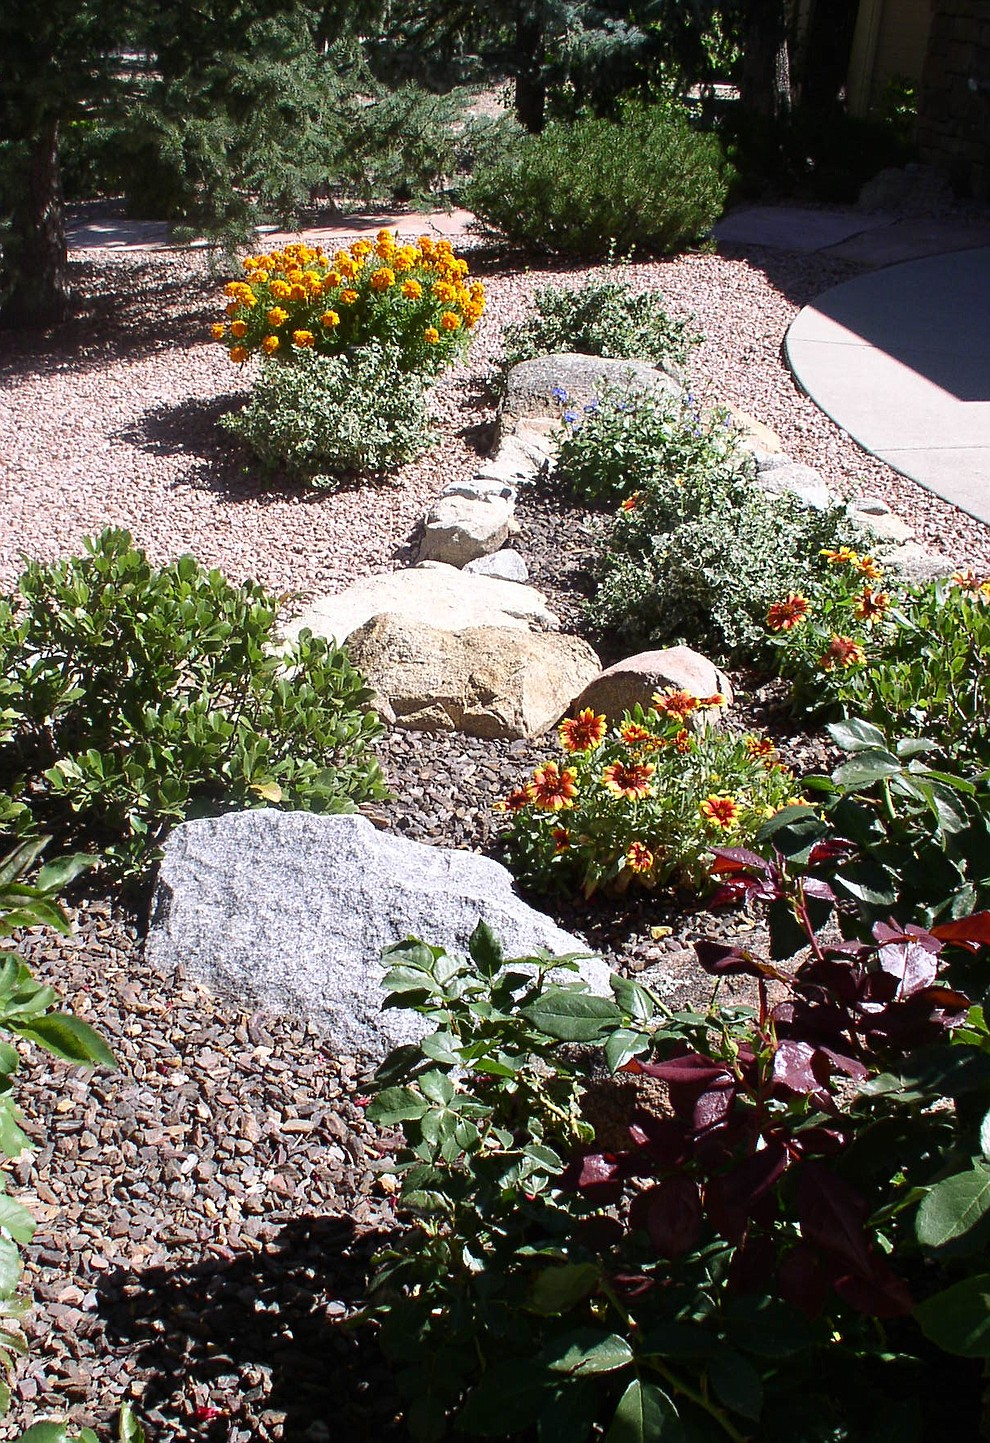 Scene from the Halls' garden. (Alta Vista Garden Club/Courtesy)